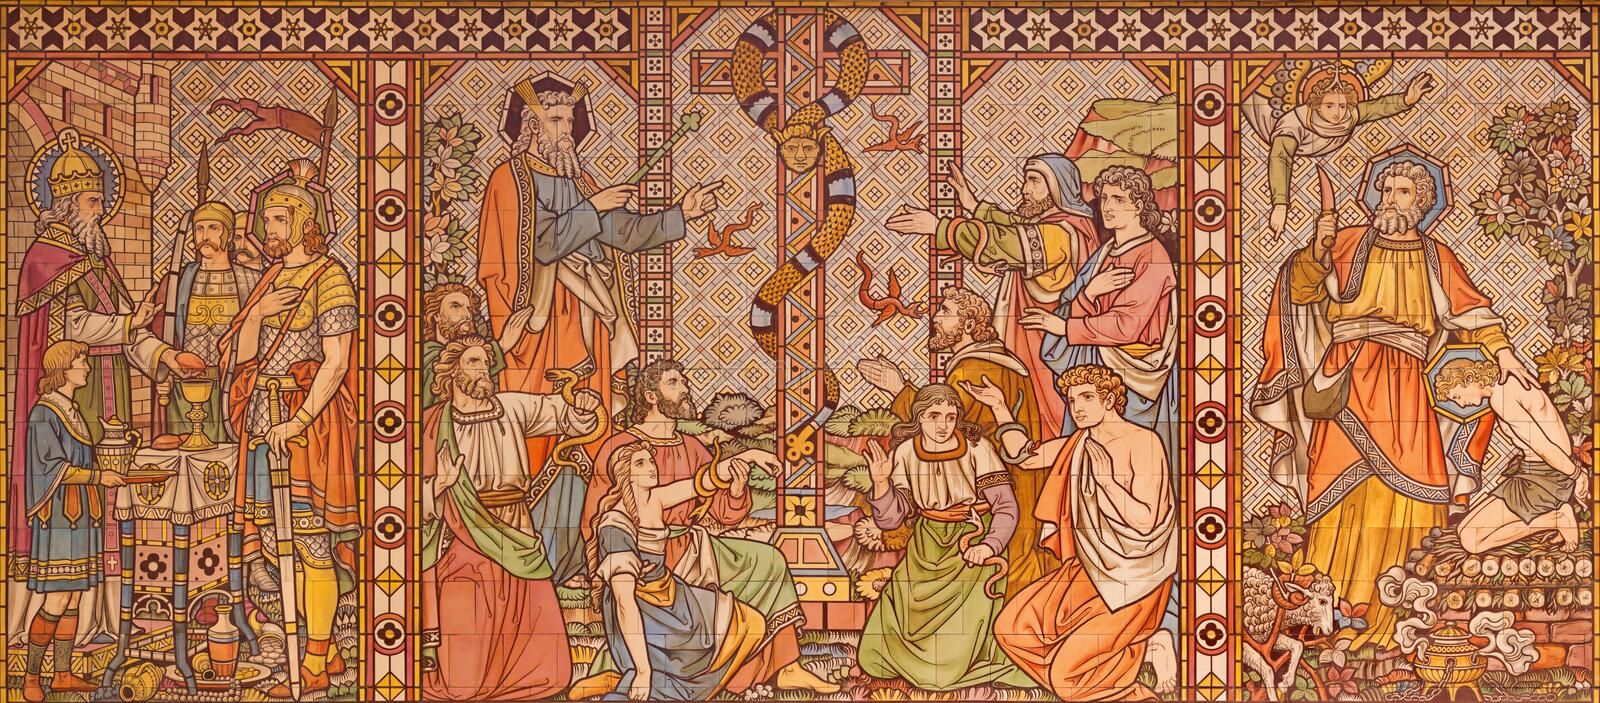 London - The tiled mosaic of Old testament scenes with the patriarchs, Melchizedek, Moses and Abraham in church All Saints. LONDON, GREAT BRITAIN - SEPTEMBER 15 royalty free stock photo